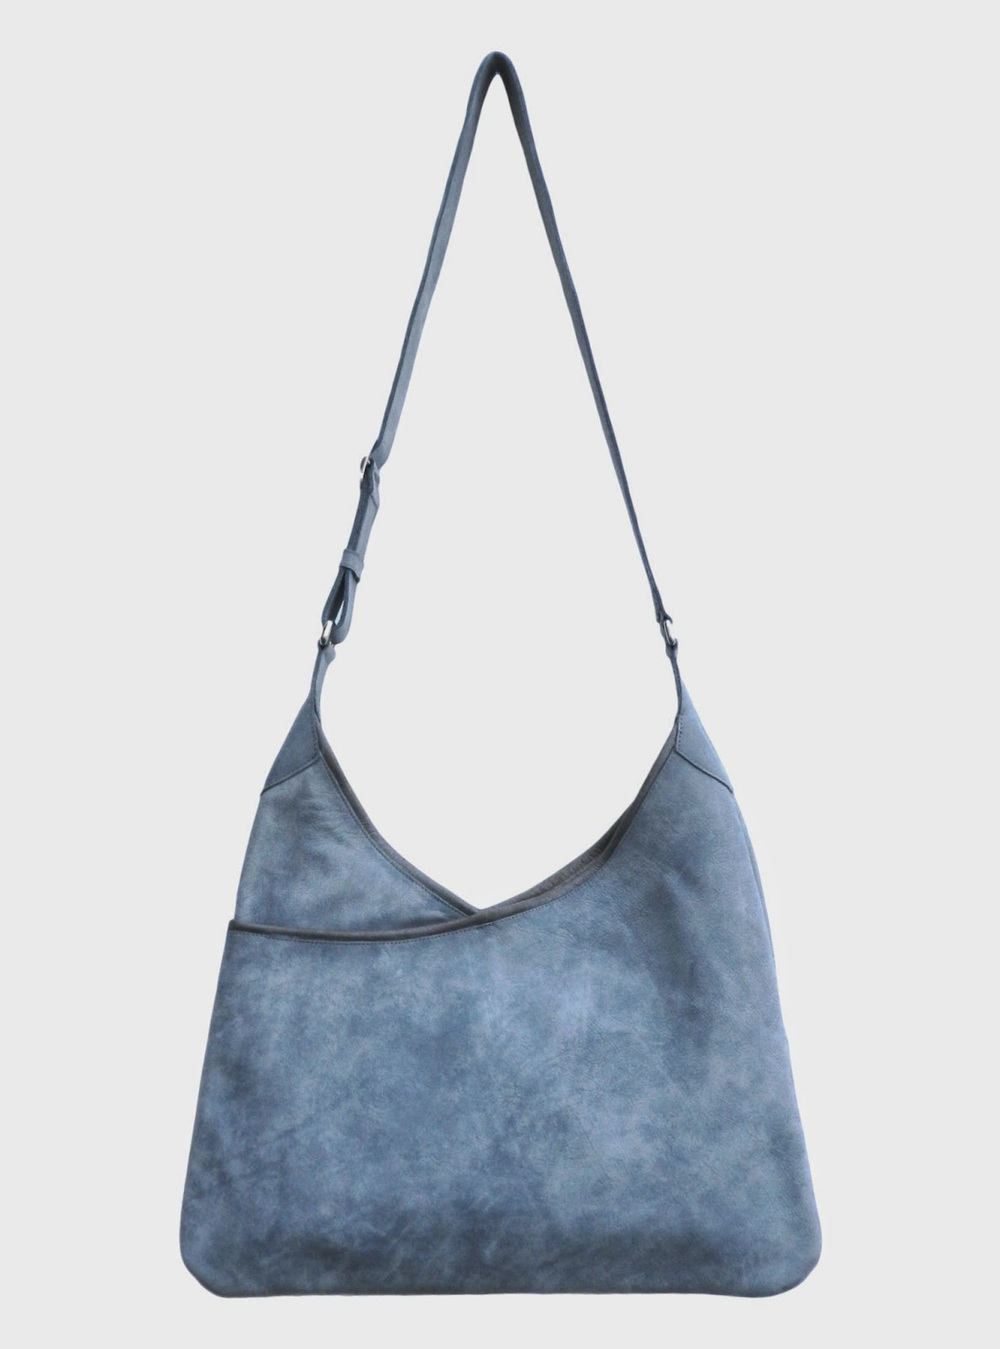 Lily and Lola 'Lisa' Blue Grey Leather